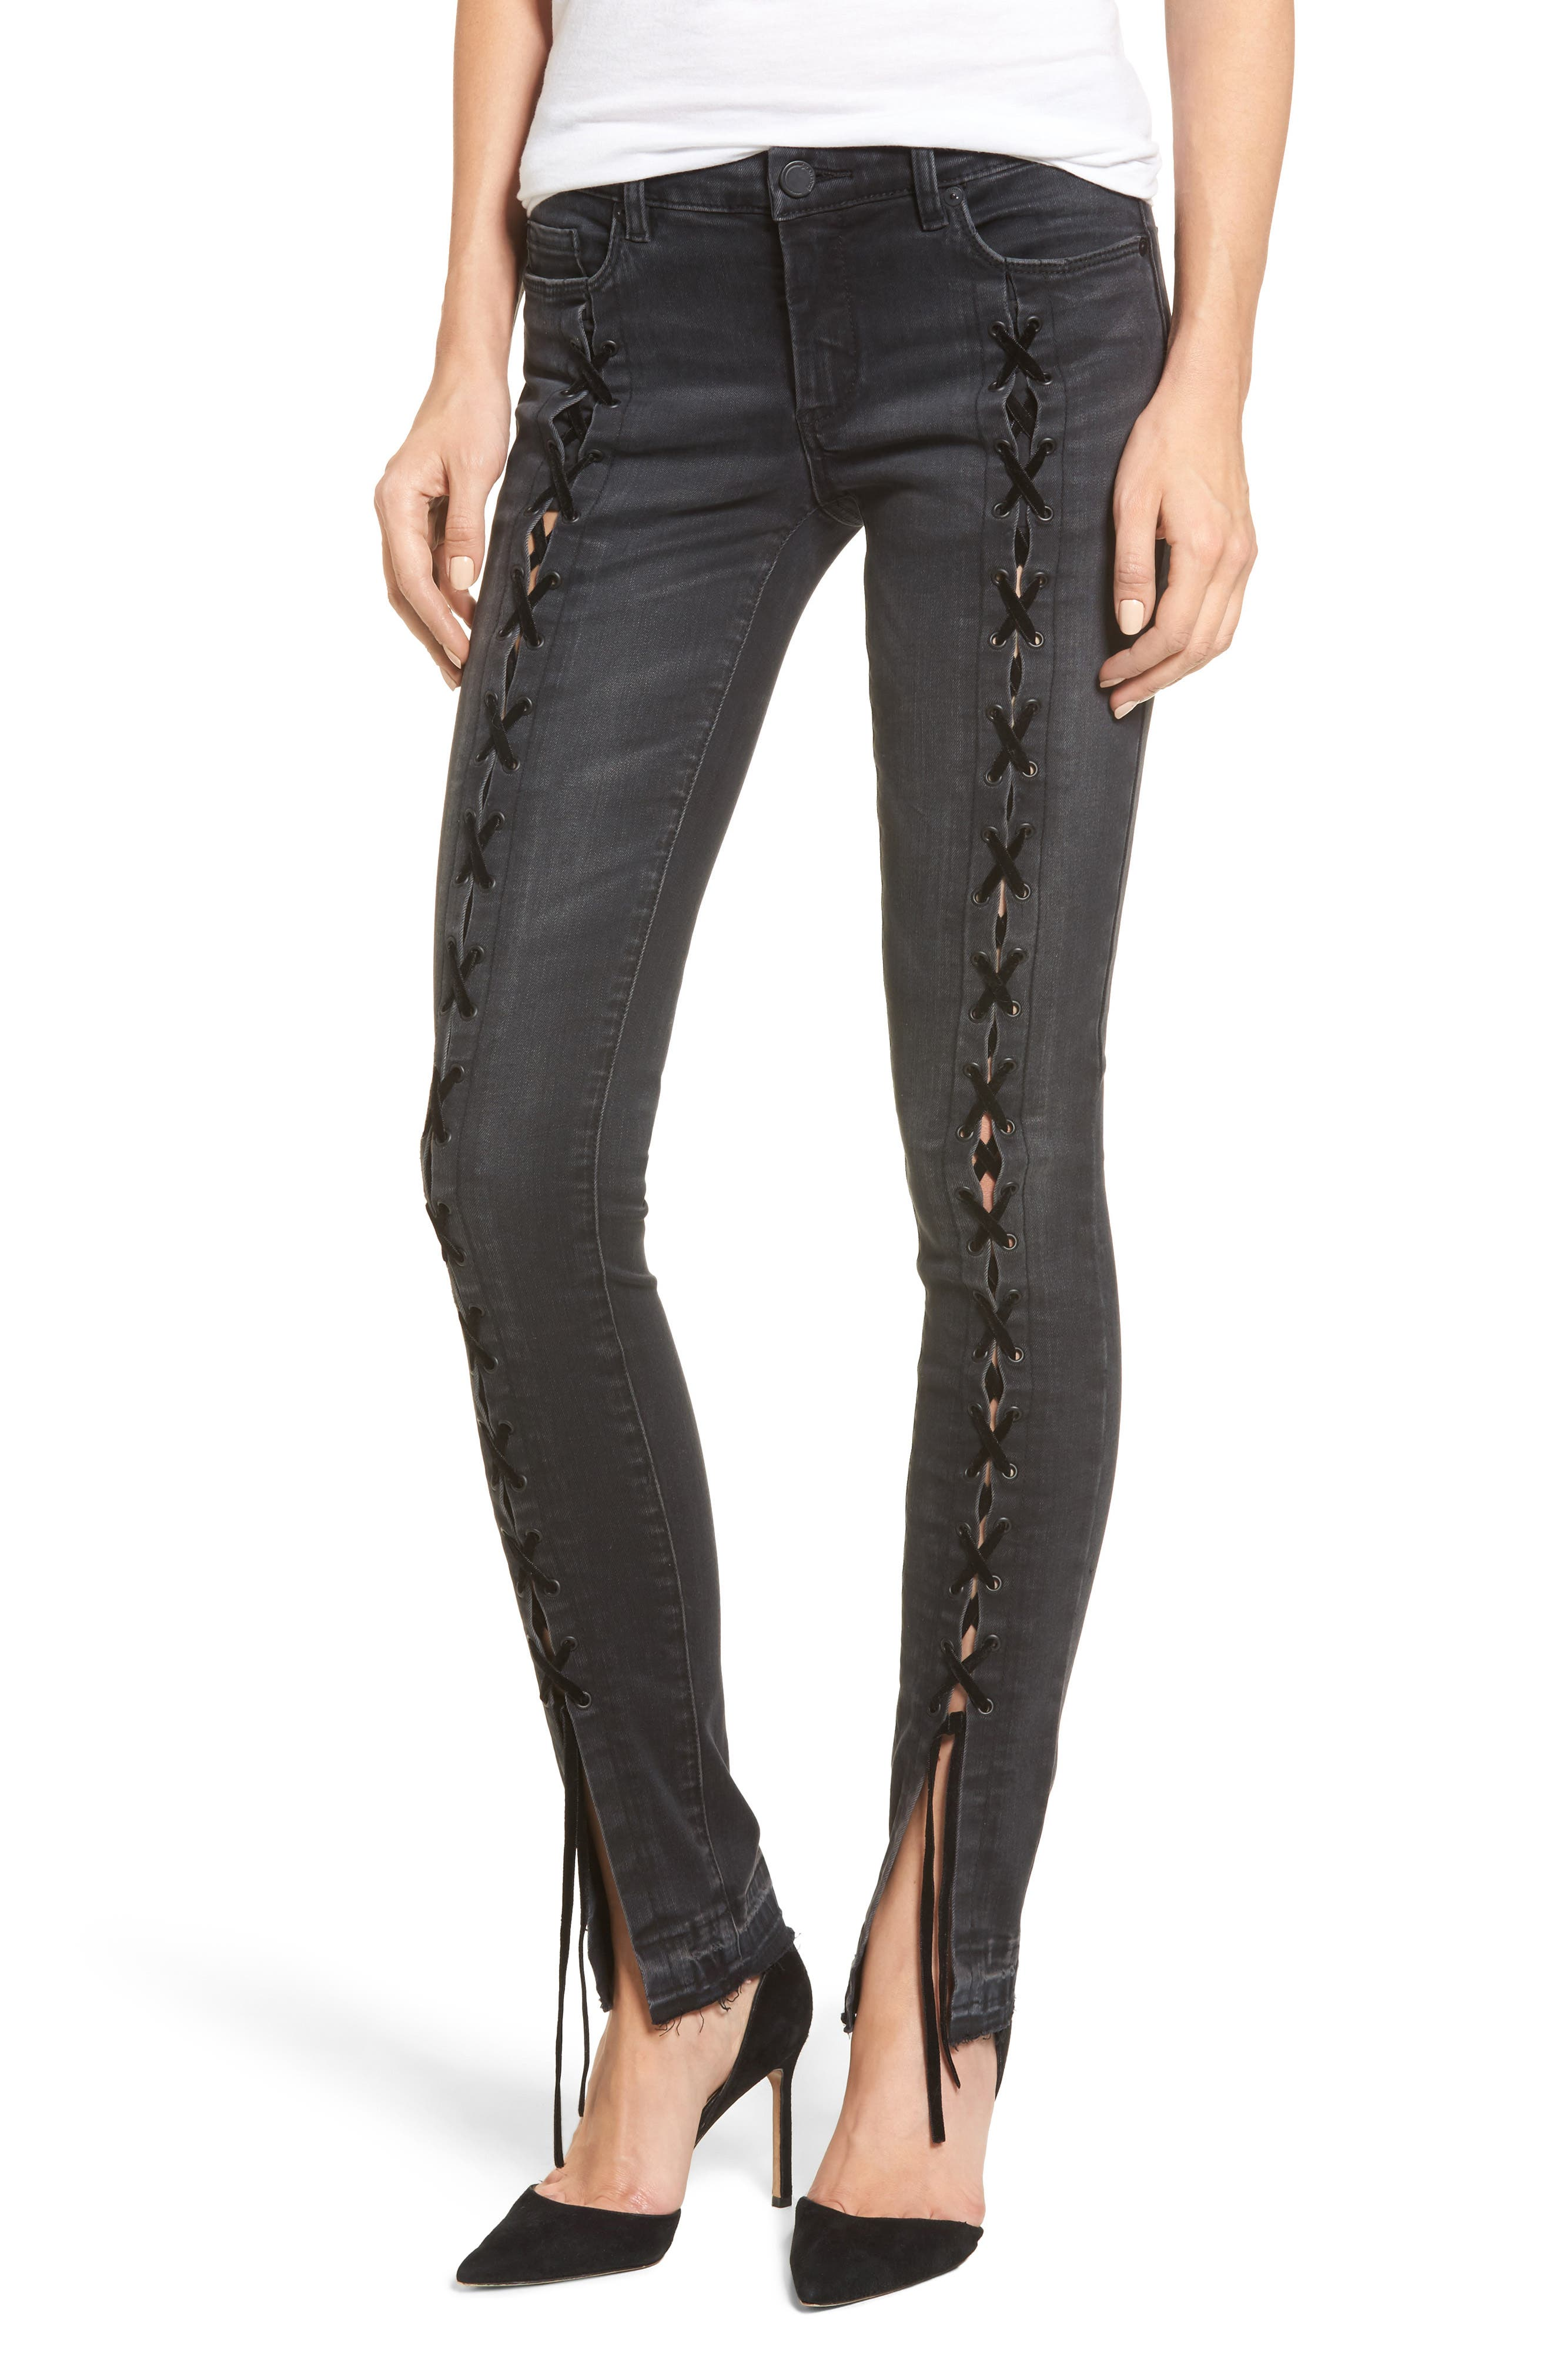 BLANKNYC Crash Tactics Lace Up Skinny Jeans